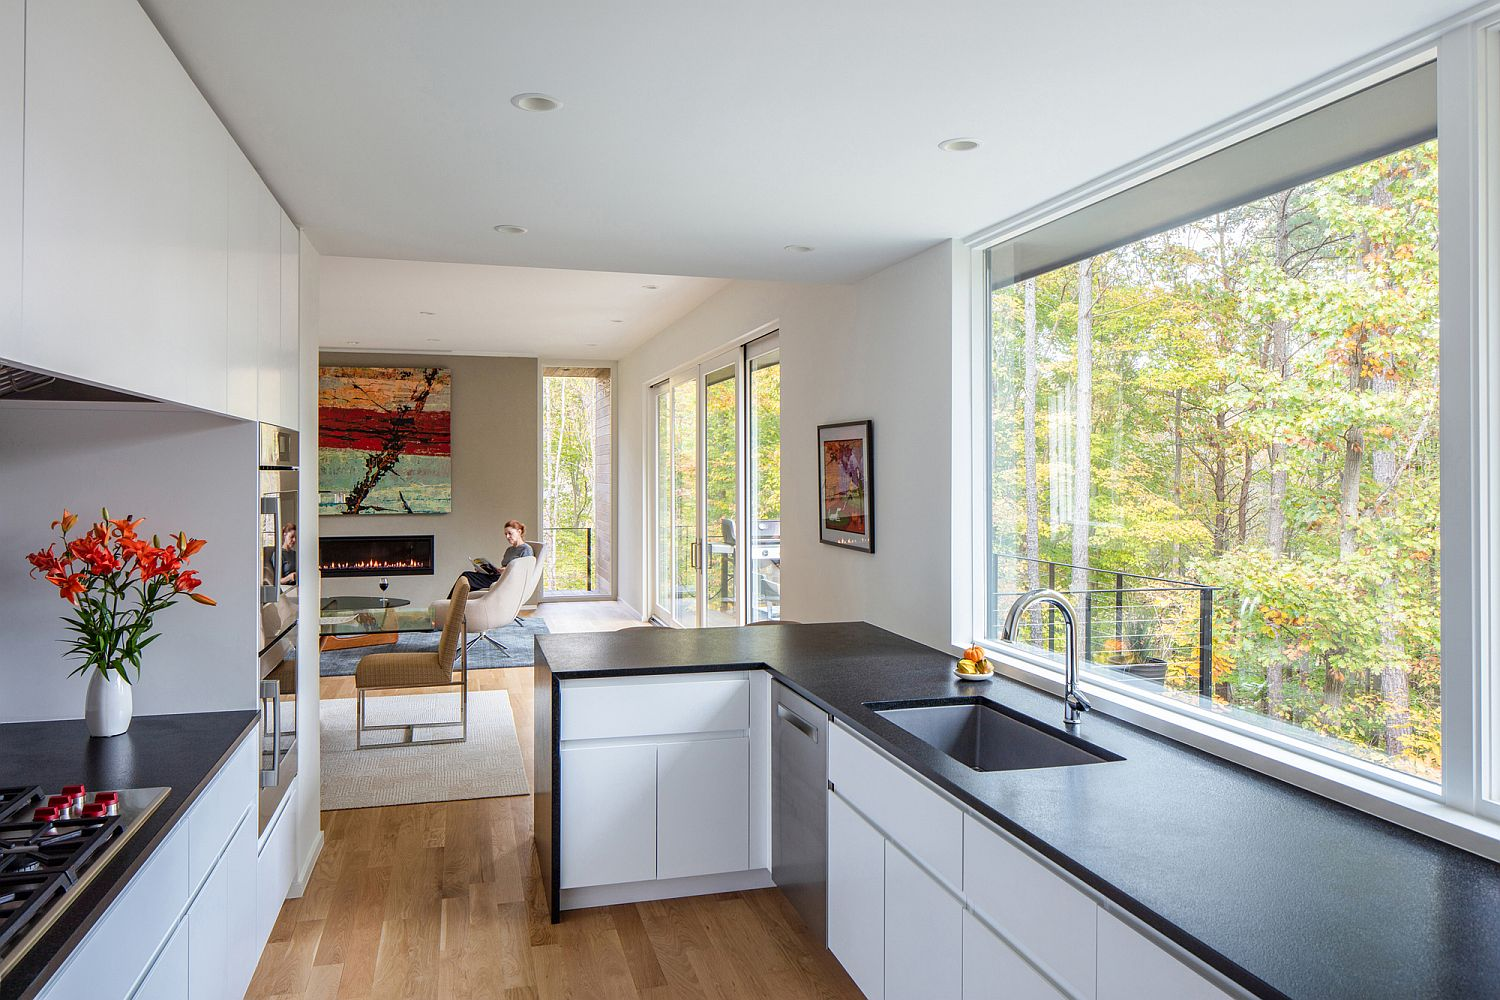 Kitchen in the corner makes most of available space while offering lovelys views of the woods